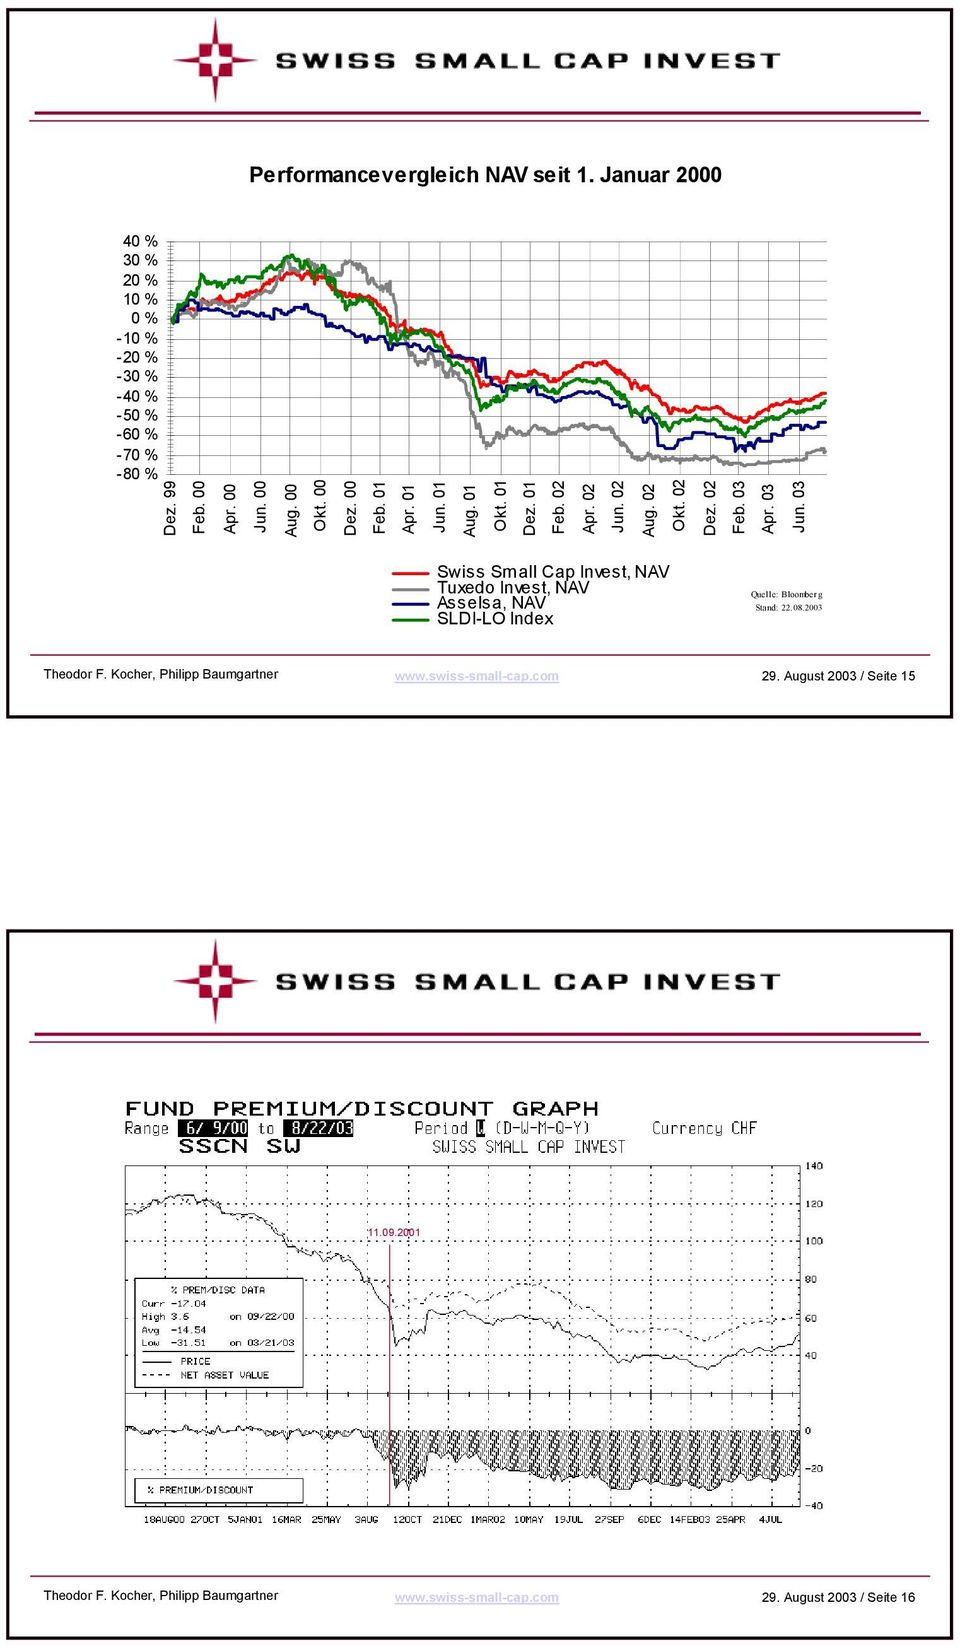 03 Swiss Small Cap Invest, NAV Tuxedo Invest, NAV Ass els a, NAV SLDI-LO Index Quelle: Bloomberg Stand: 22.08.2003 Theodor F.